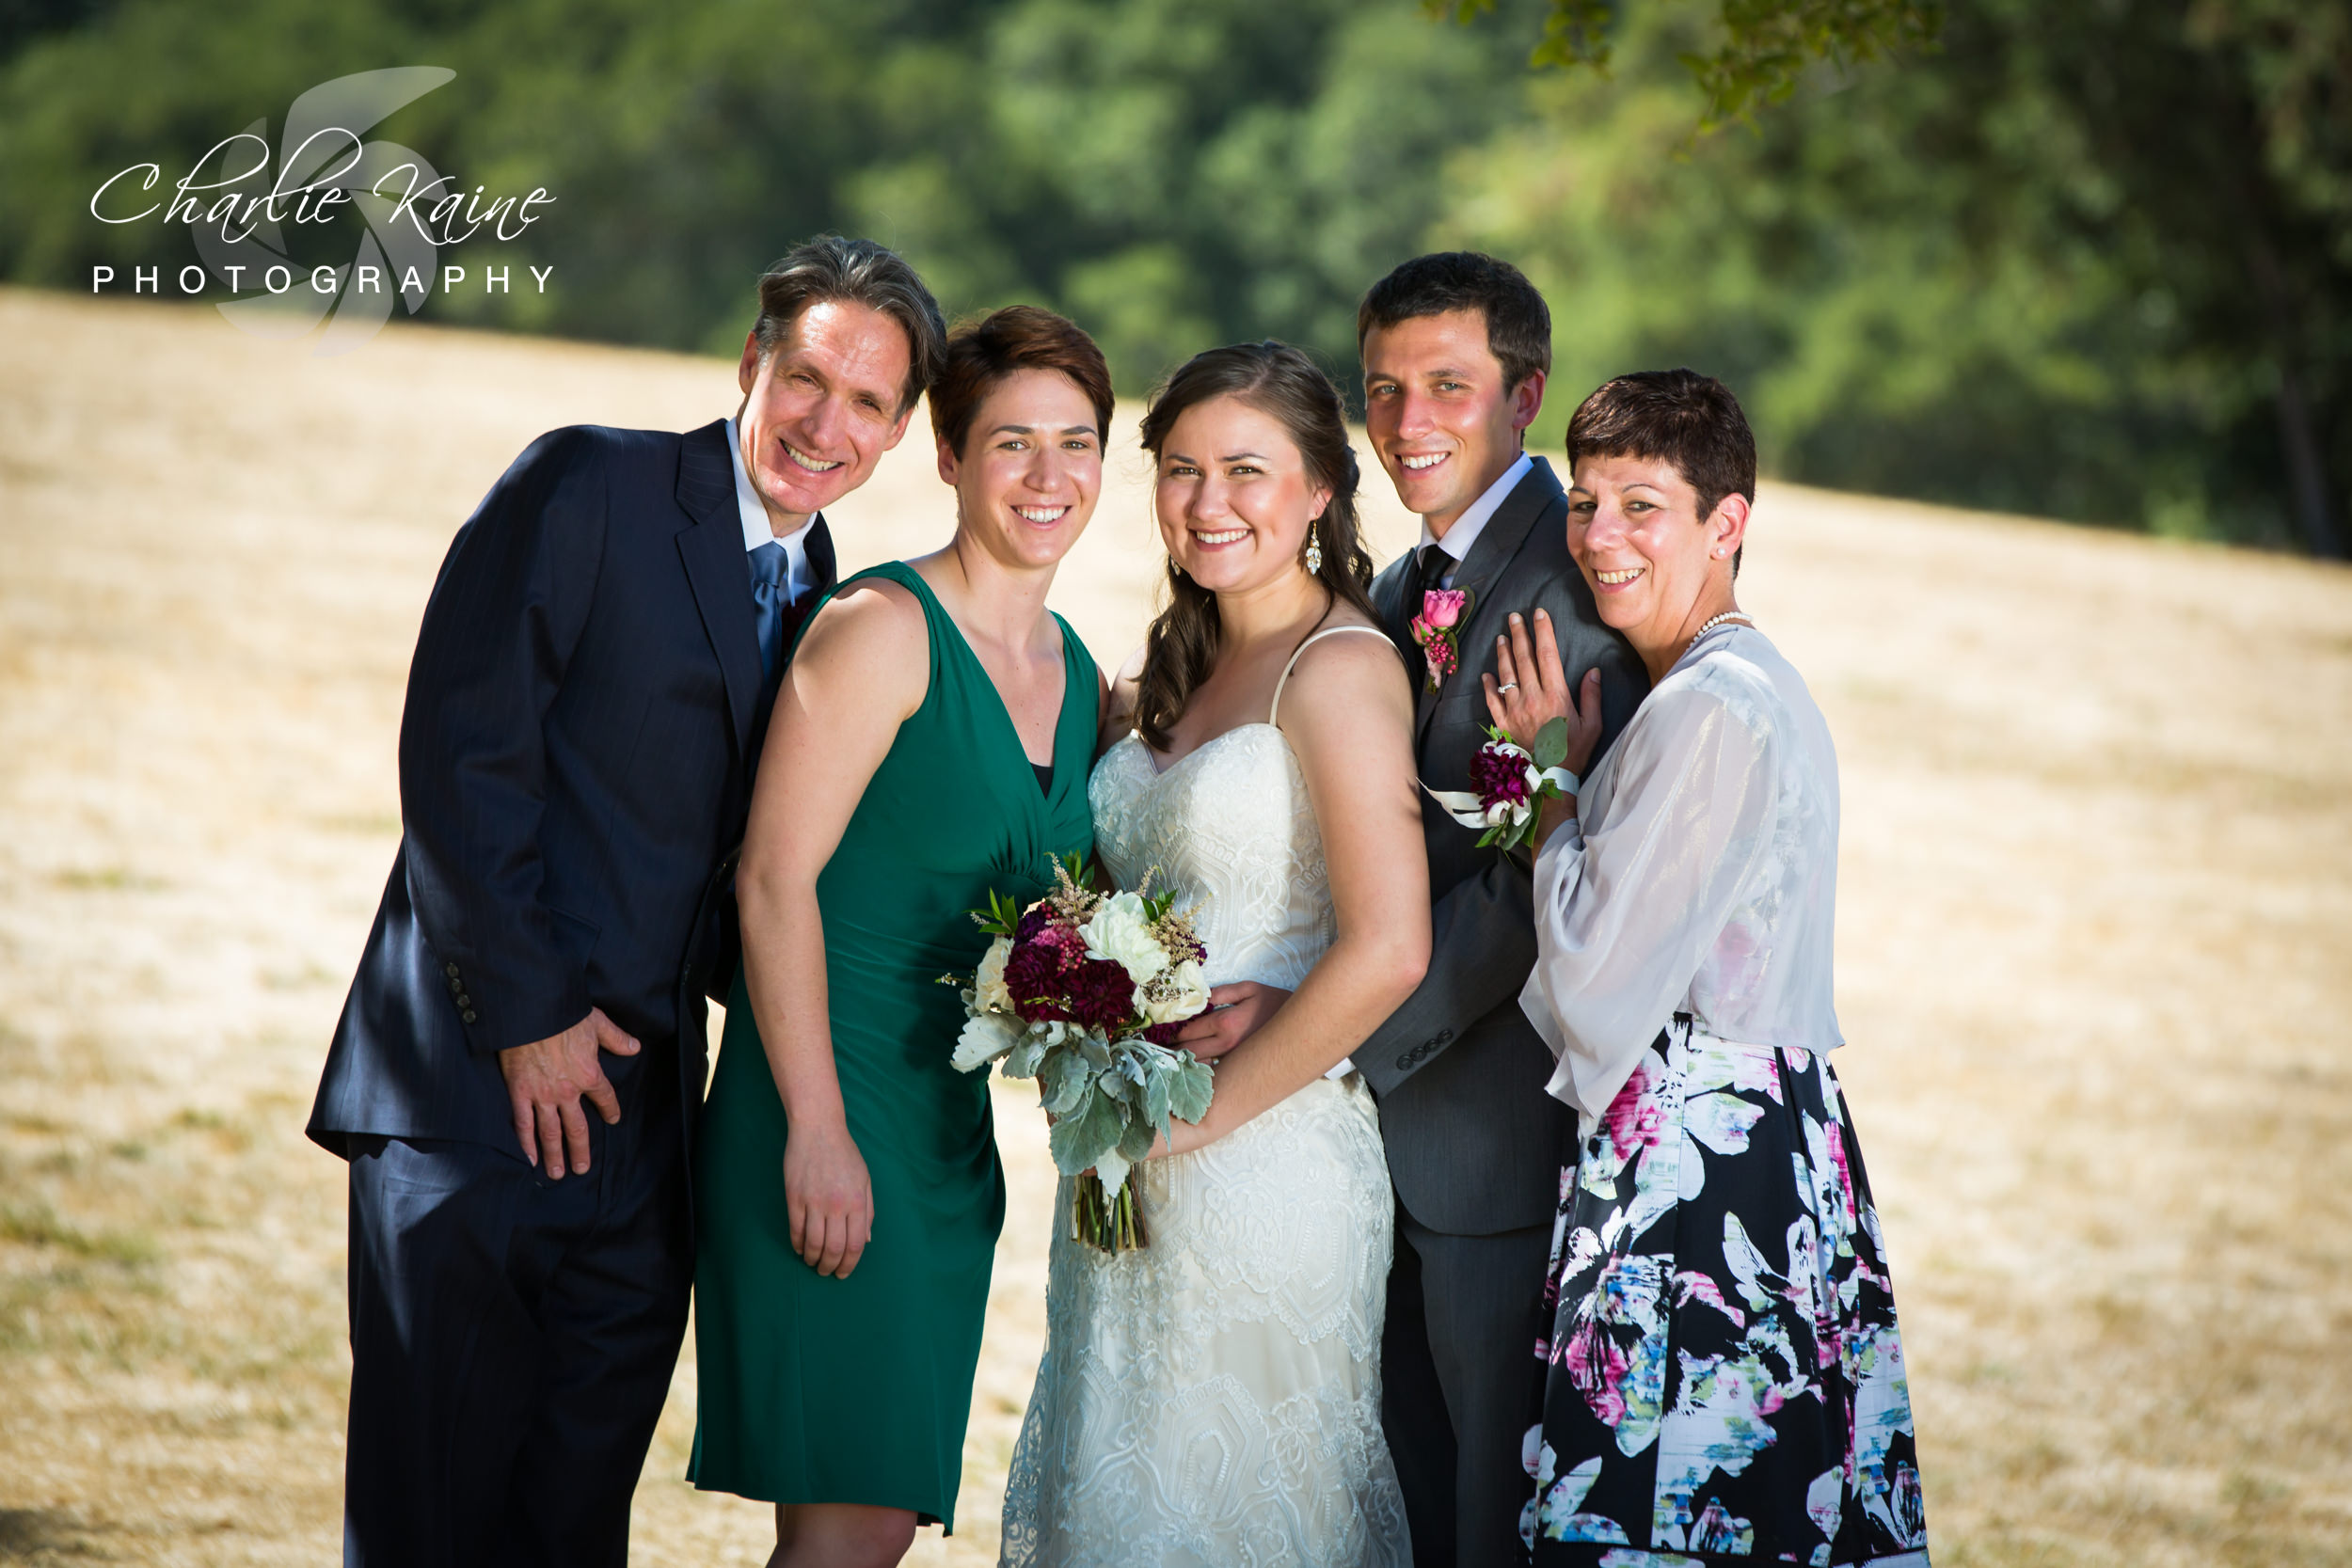 Charlie Kaine Photographer | San Francisco Wedding Photographer